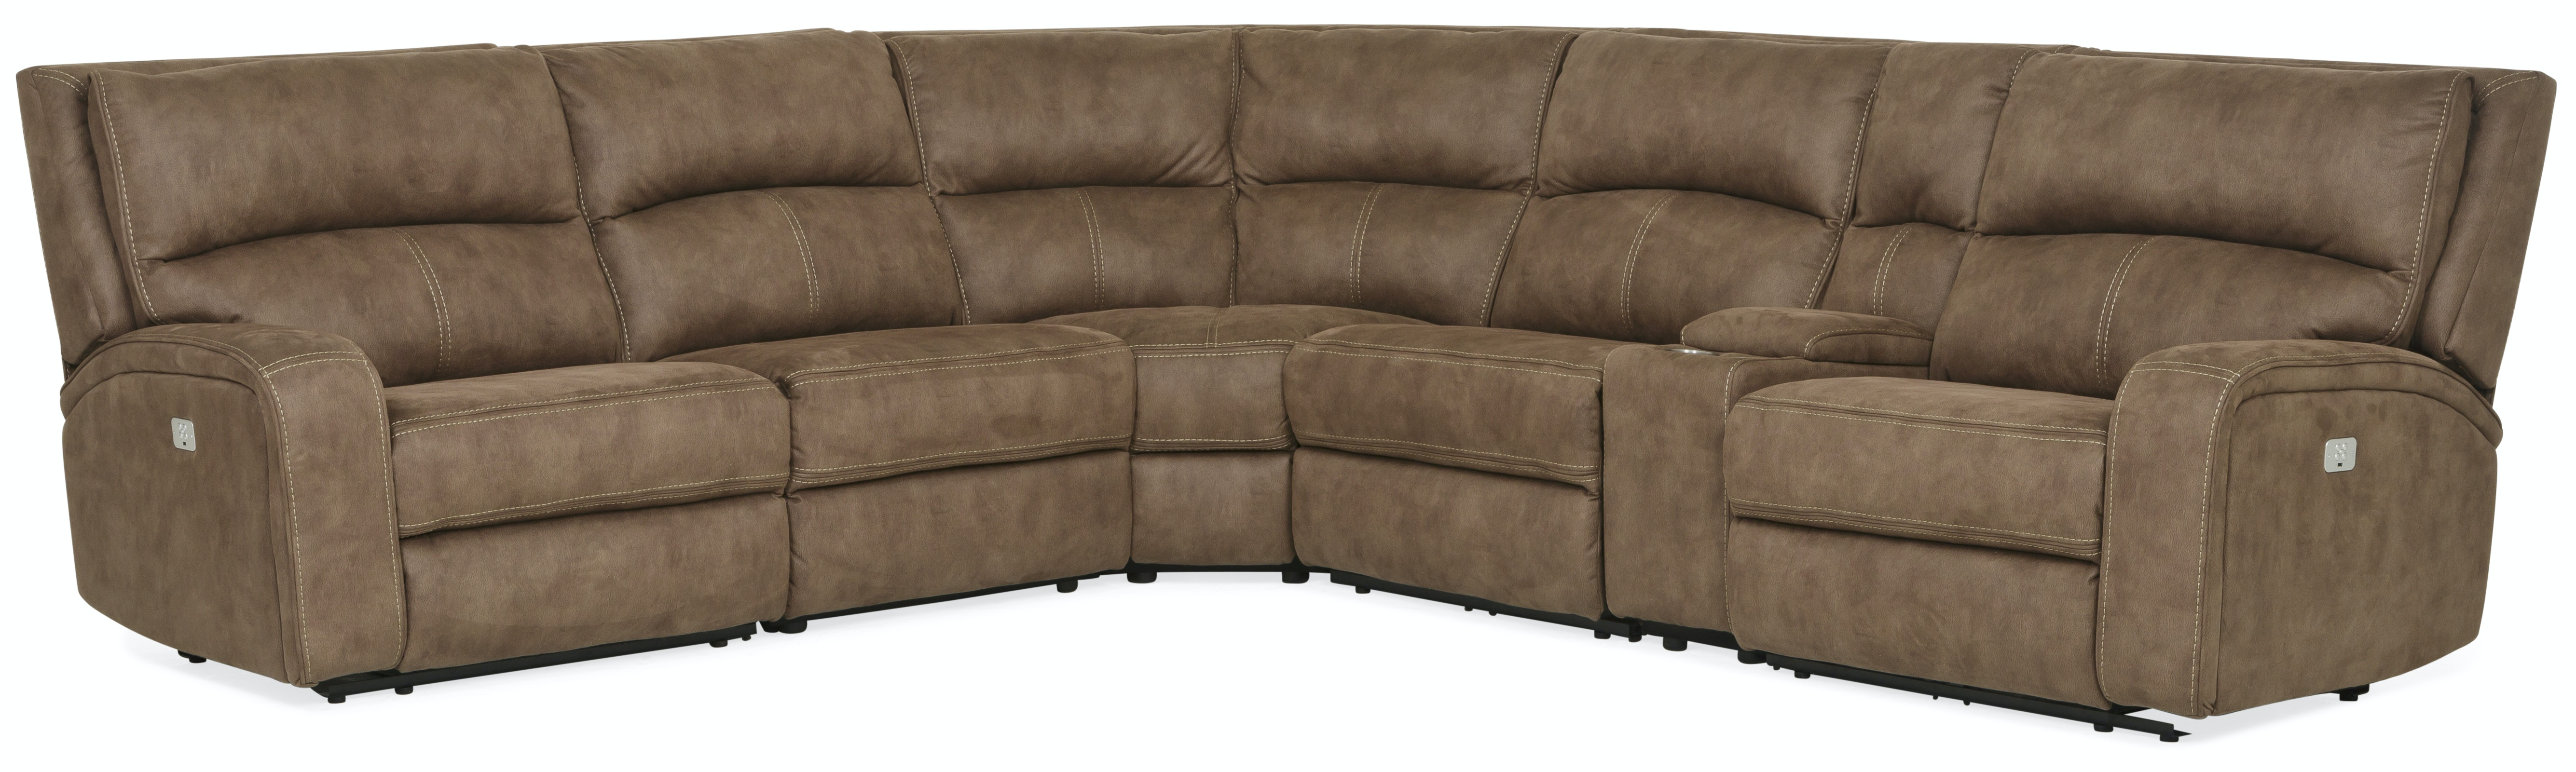 justin ii fabric reclining sectional sofa large sleeper living room sectionals leather more star furniture vaquero 6 piece power